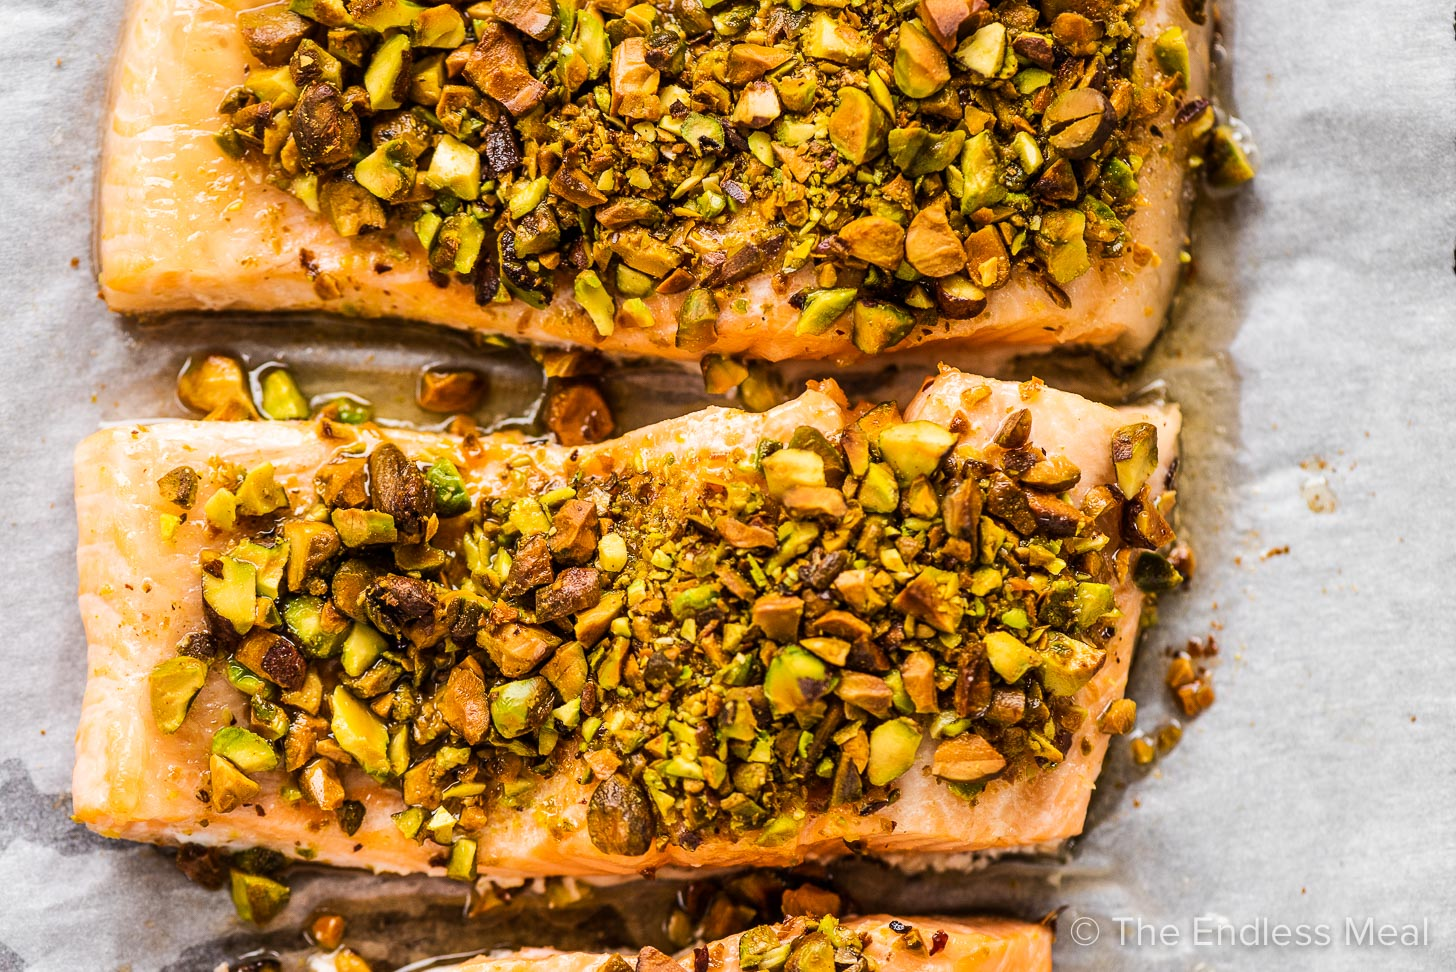 Pistachio crusted salmon on a baking sheet.